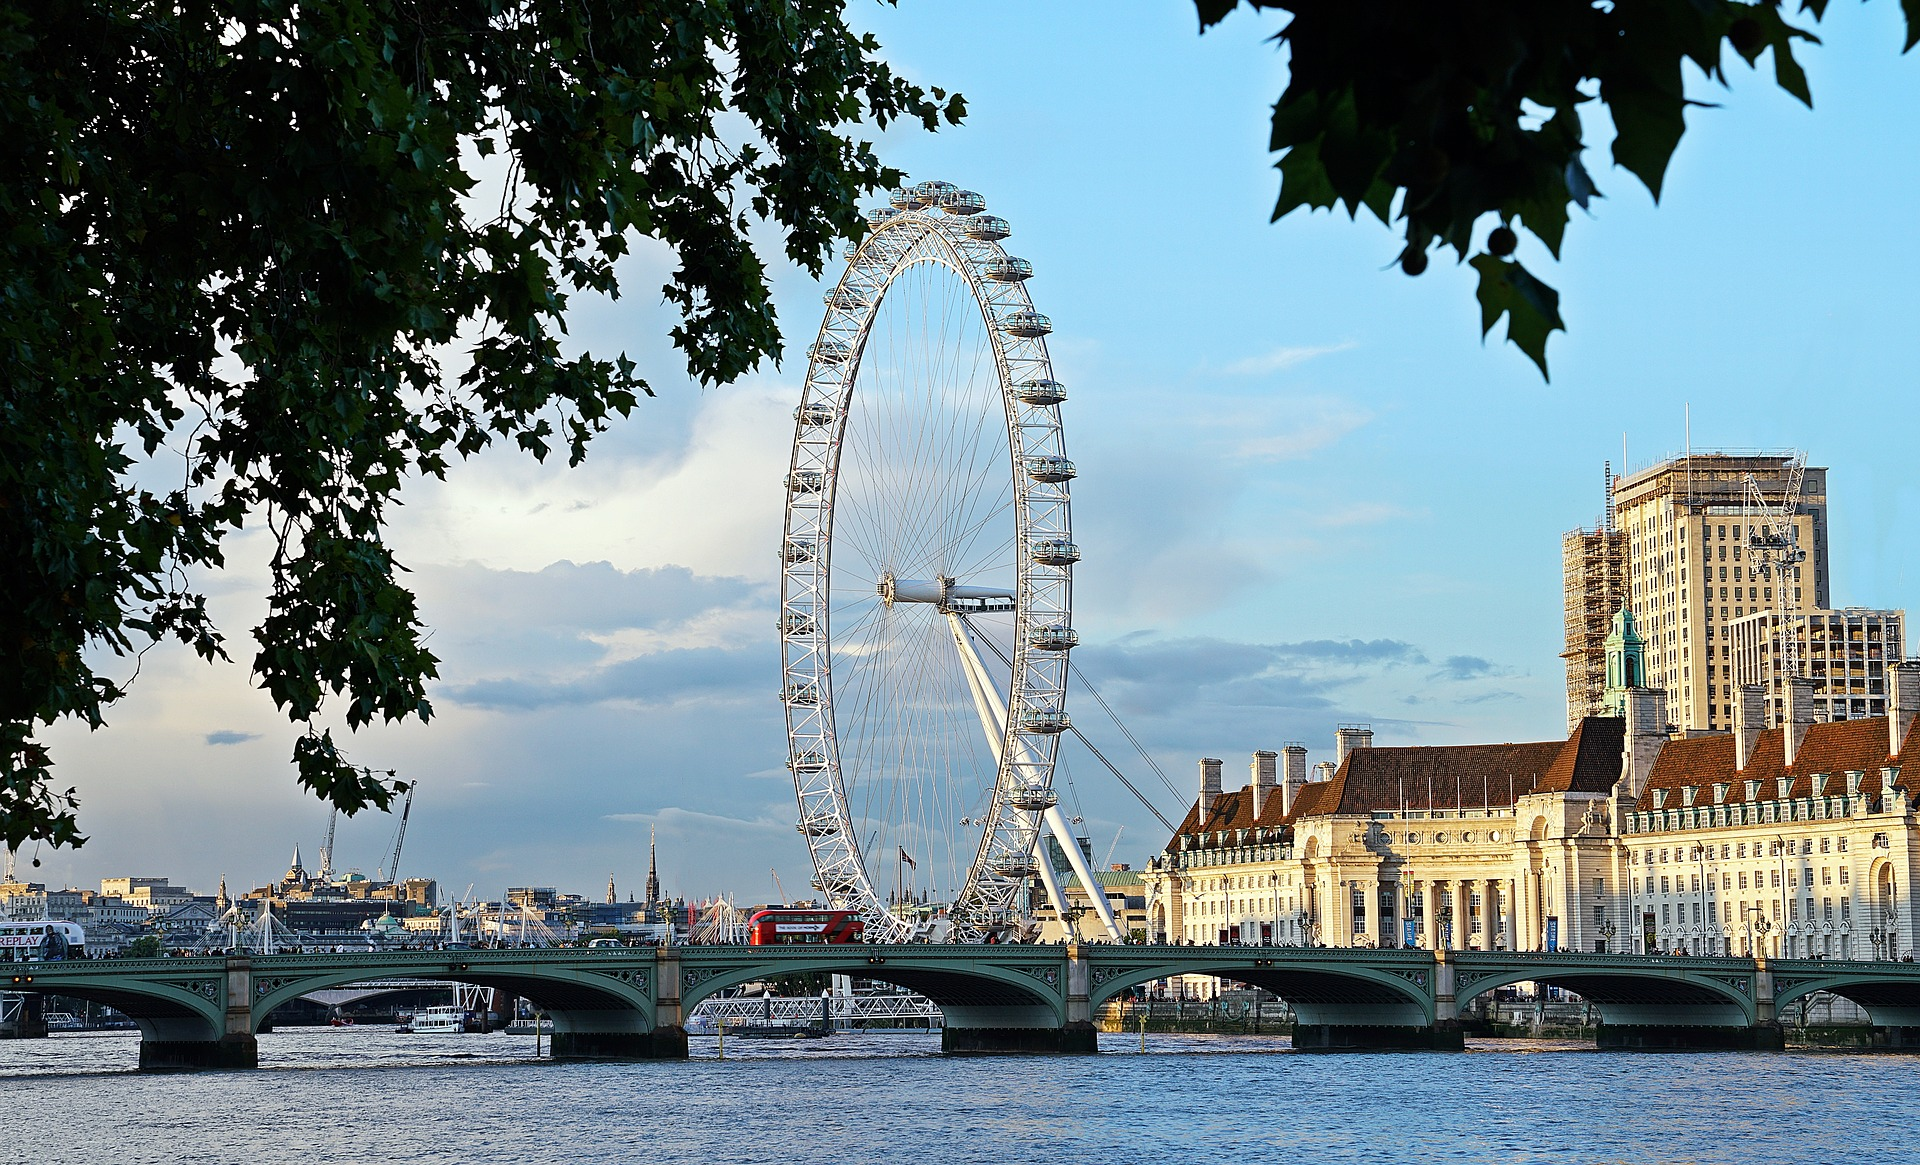 Must Do in London: Ride the London Eye